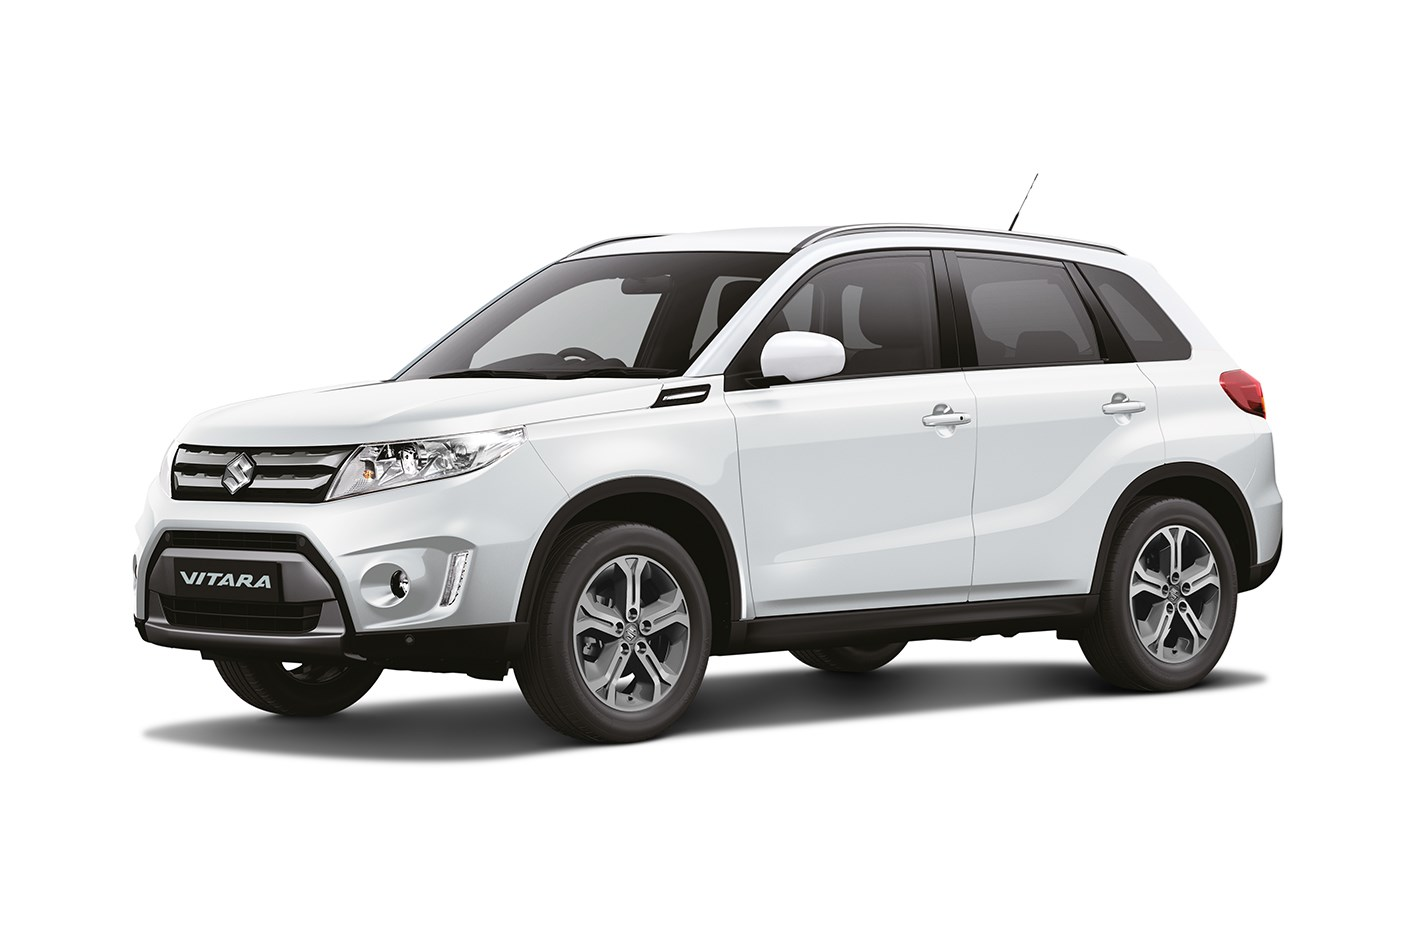 Picture of Etherny's 2015 Suzuki Vitara LY